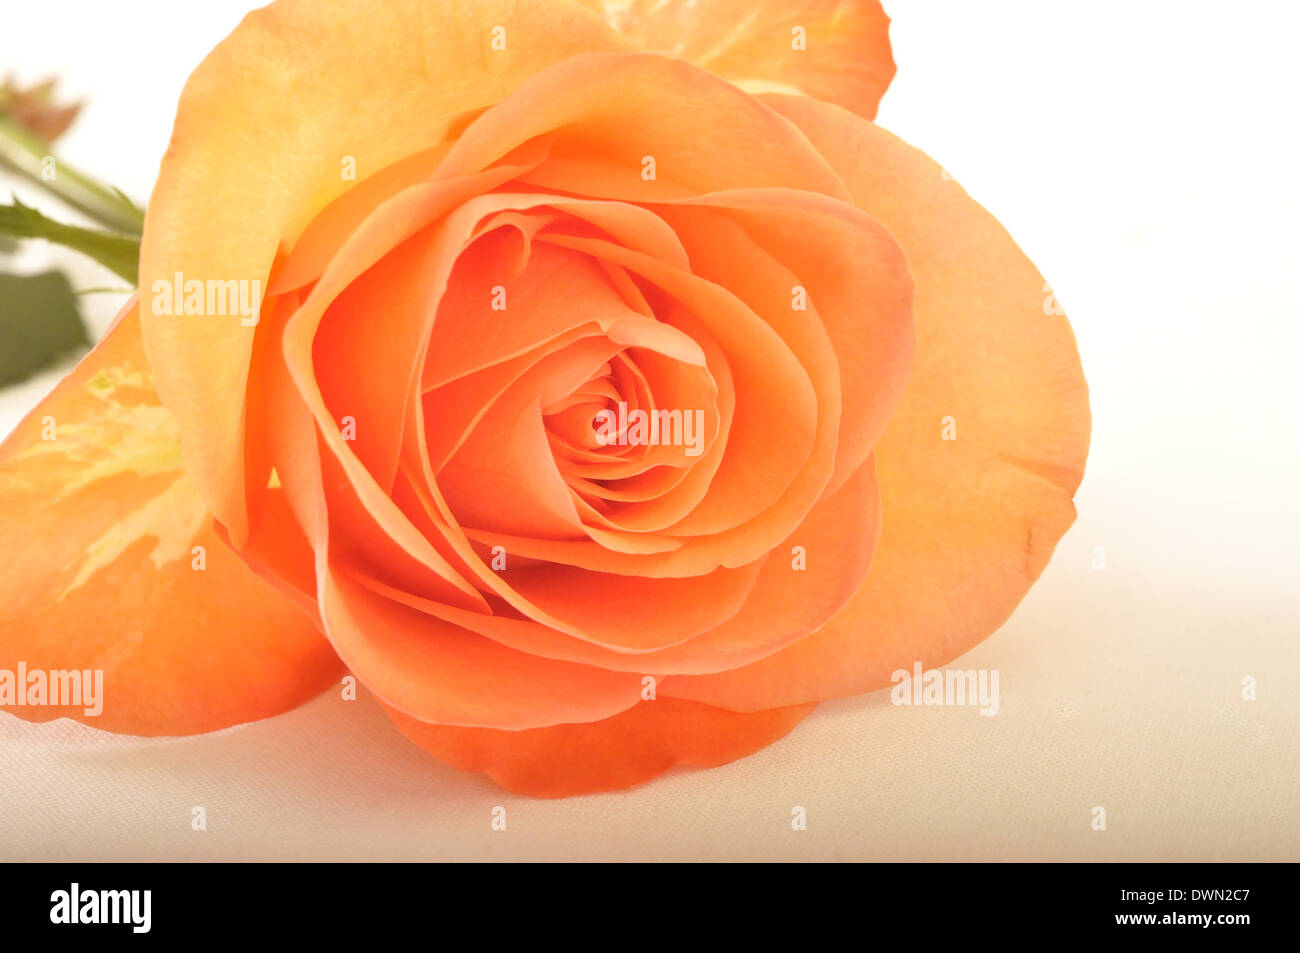 Light orange roses background gallery for The meaning of orange roses